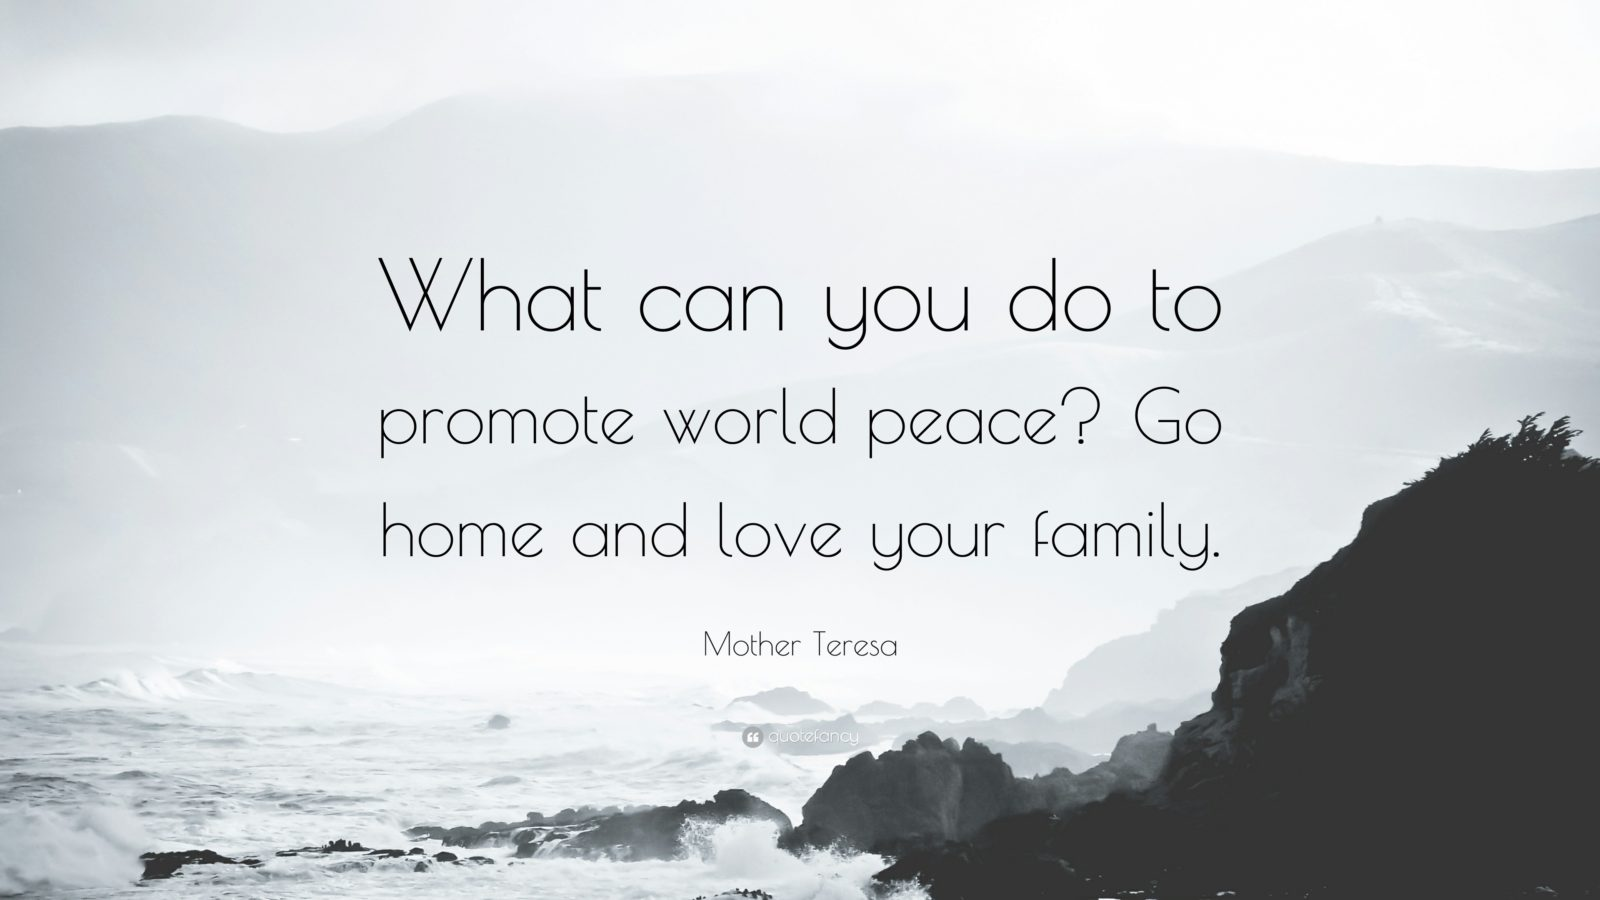 26934-Mother-Teresa-Quote-What-can-you-do-to-promote-world-peace-Go-home